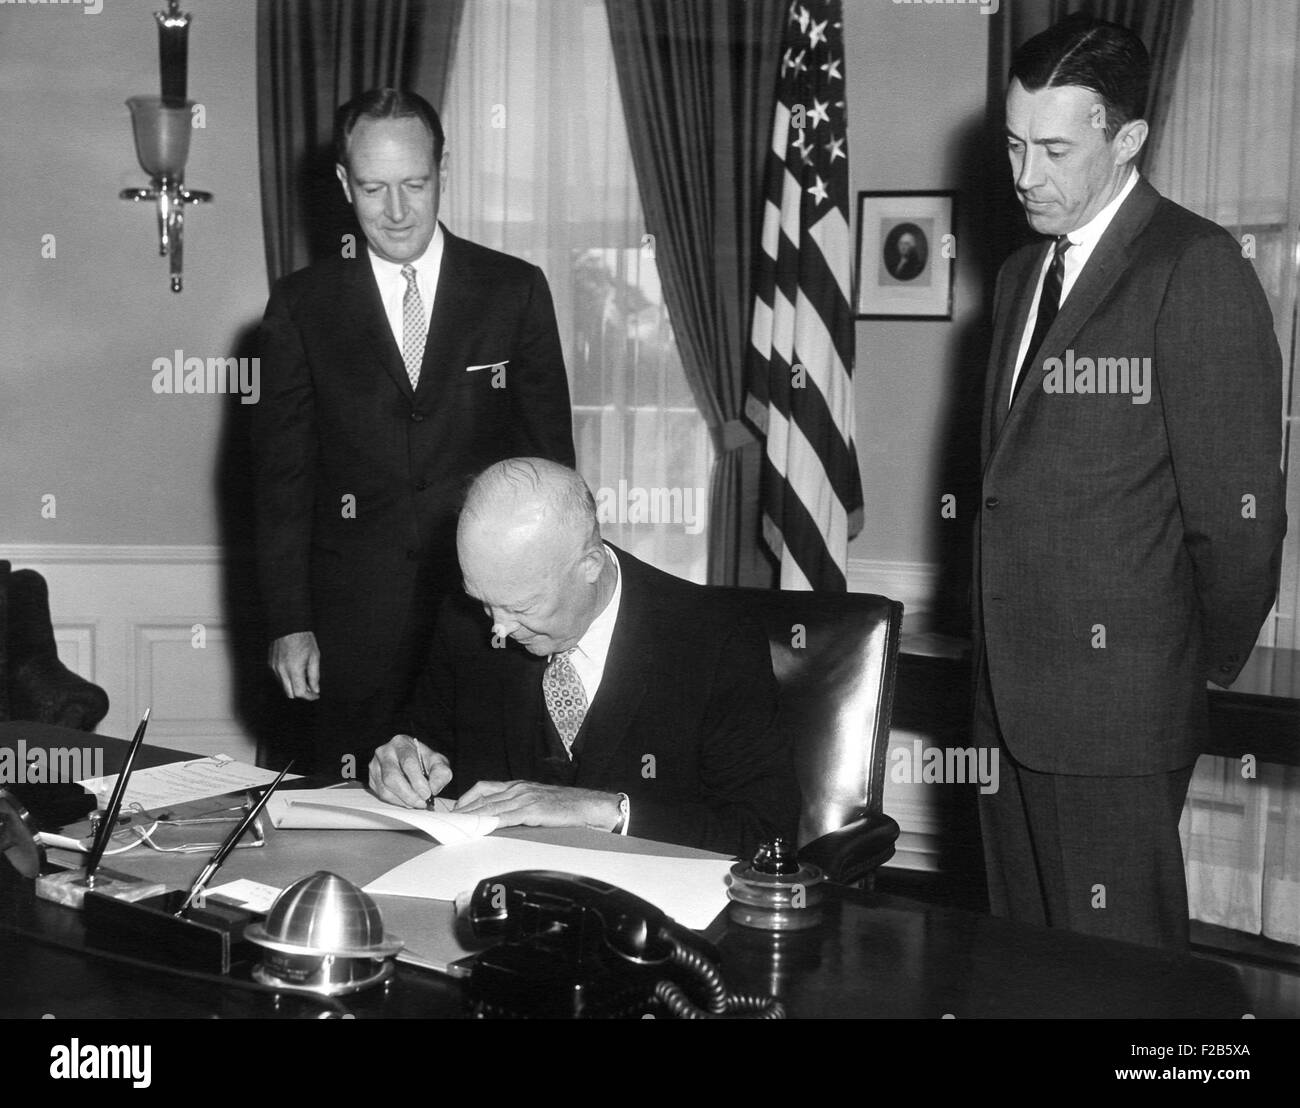 President Eisenhower signing the Civil Rights Bill of 1960. May 6, 1960. The law established federal inspection - Stock Image